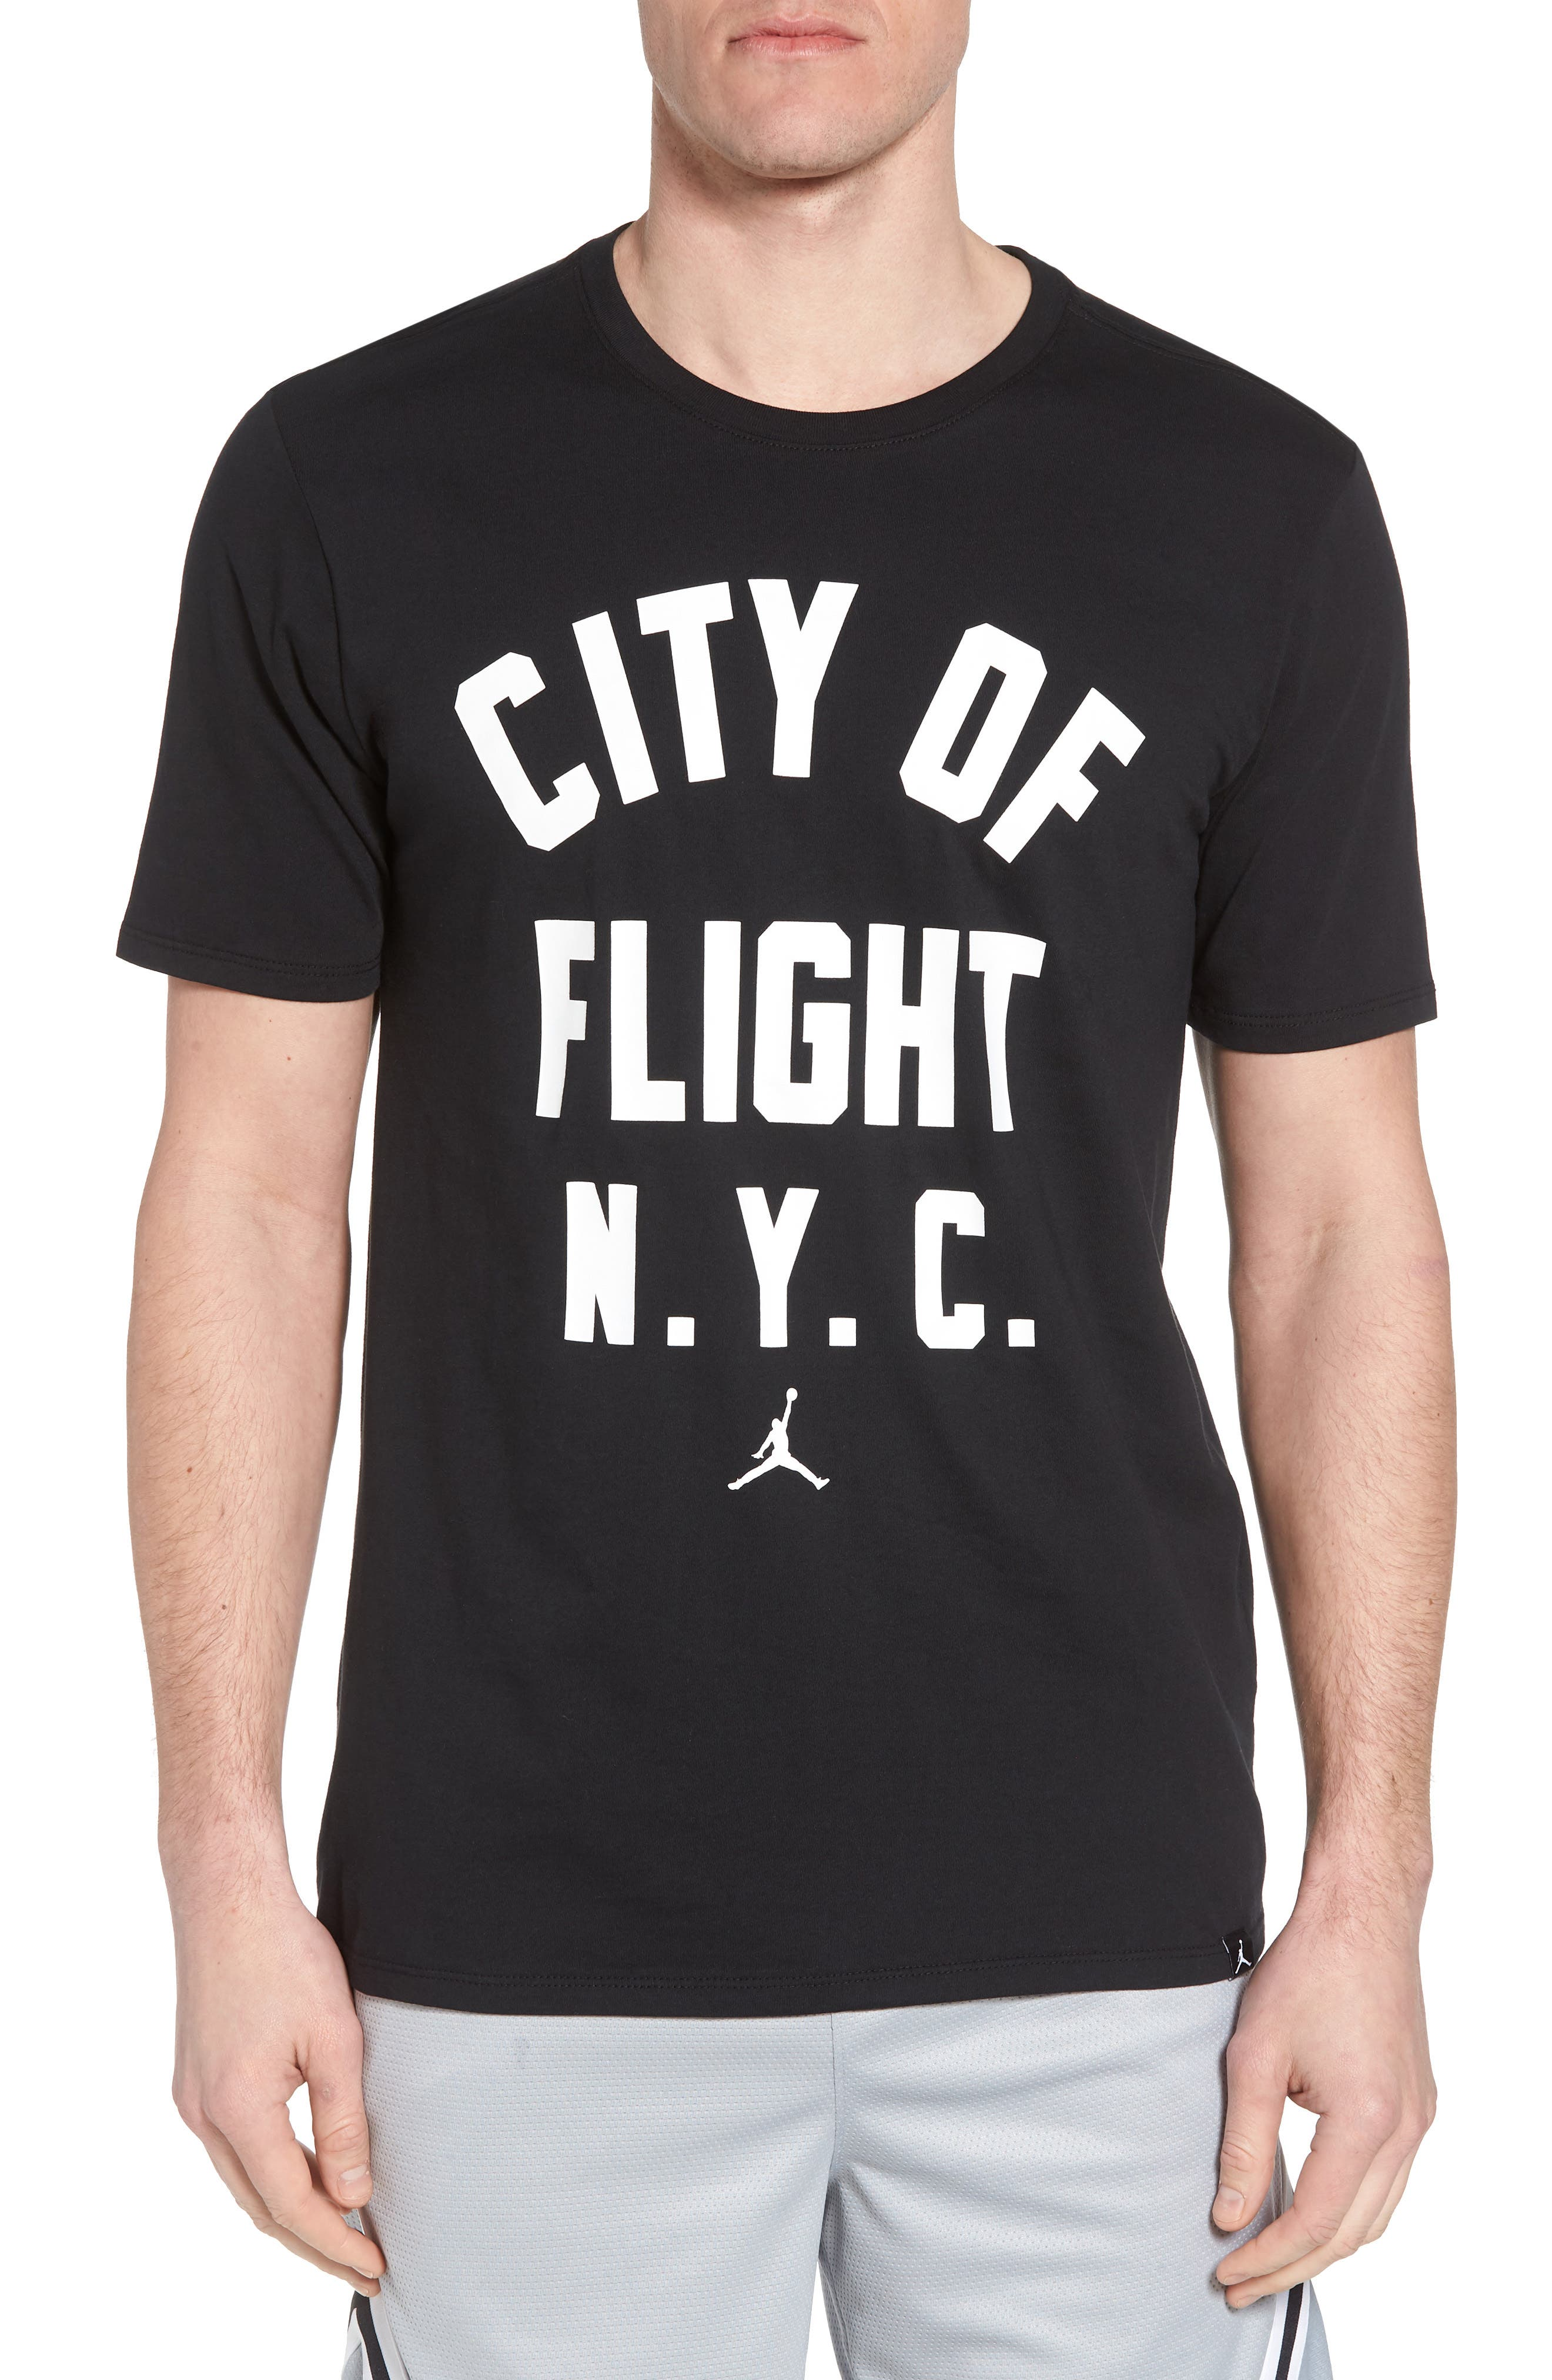 Sportswear City of Flight T-Shirt,                             Main thumbnail 1, color,                             011